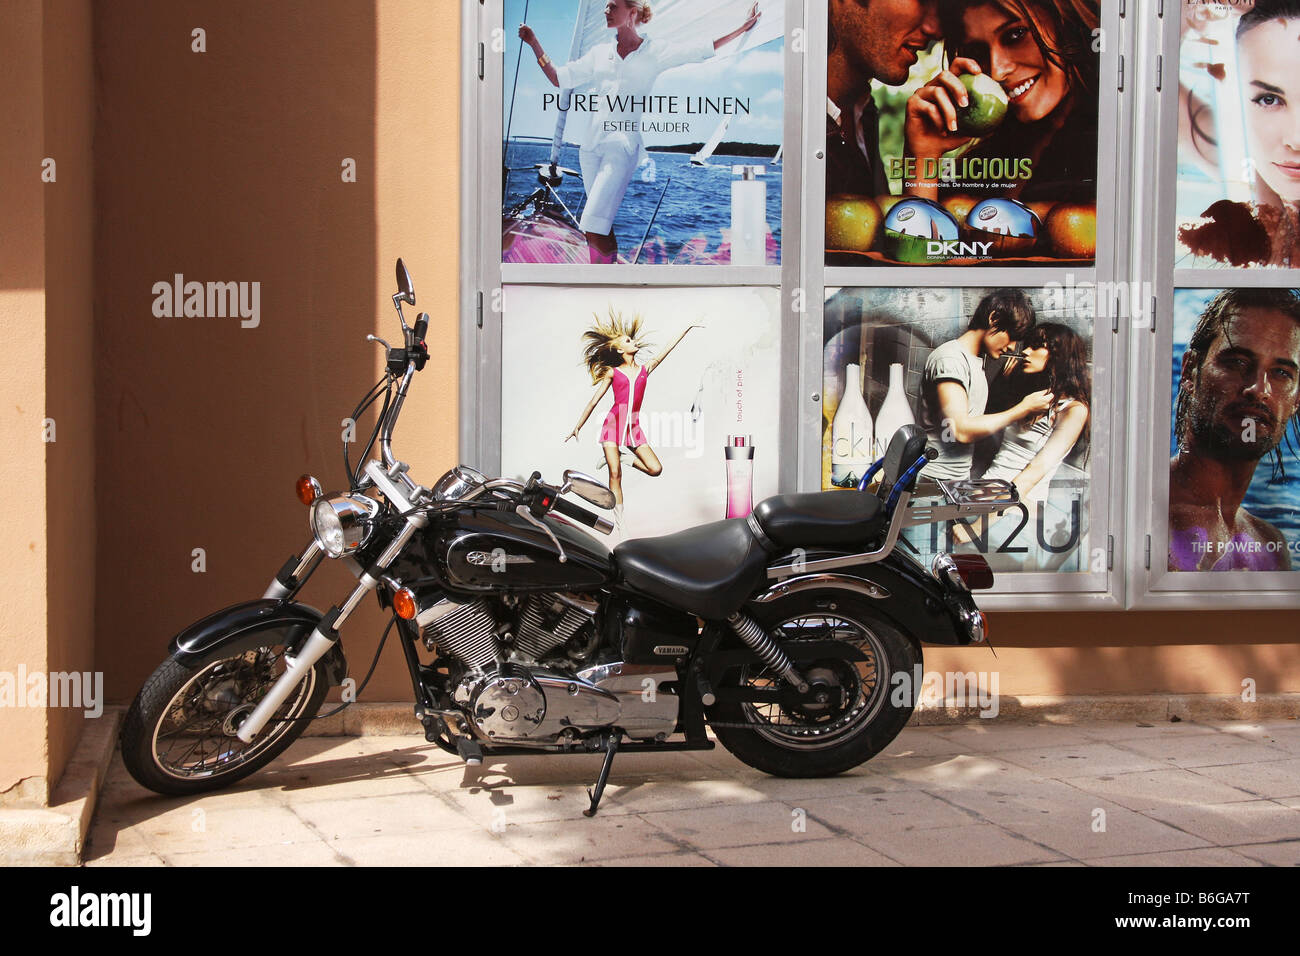 Old Yamaha bike parked next to some advertising boards in bright sun in Palma Nova, Majorca. - Stock Image